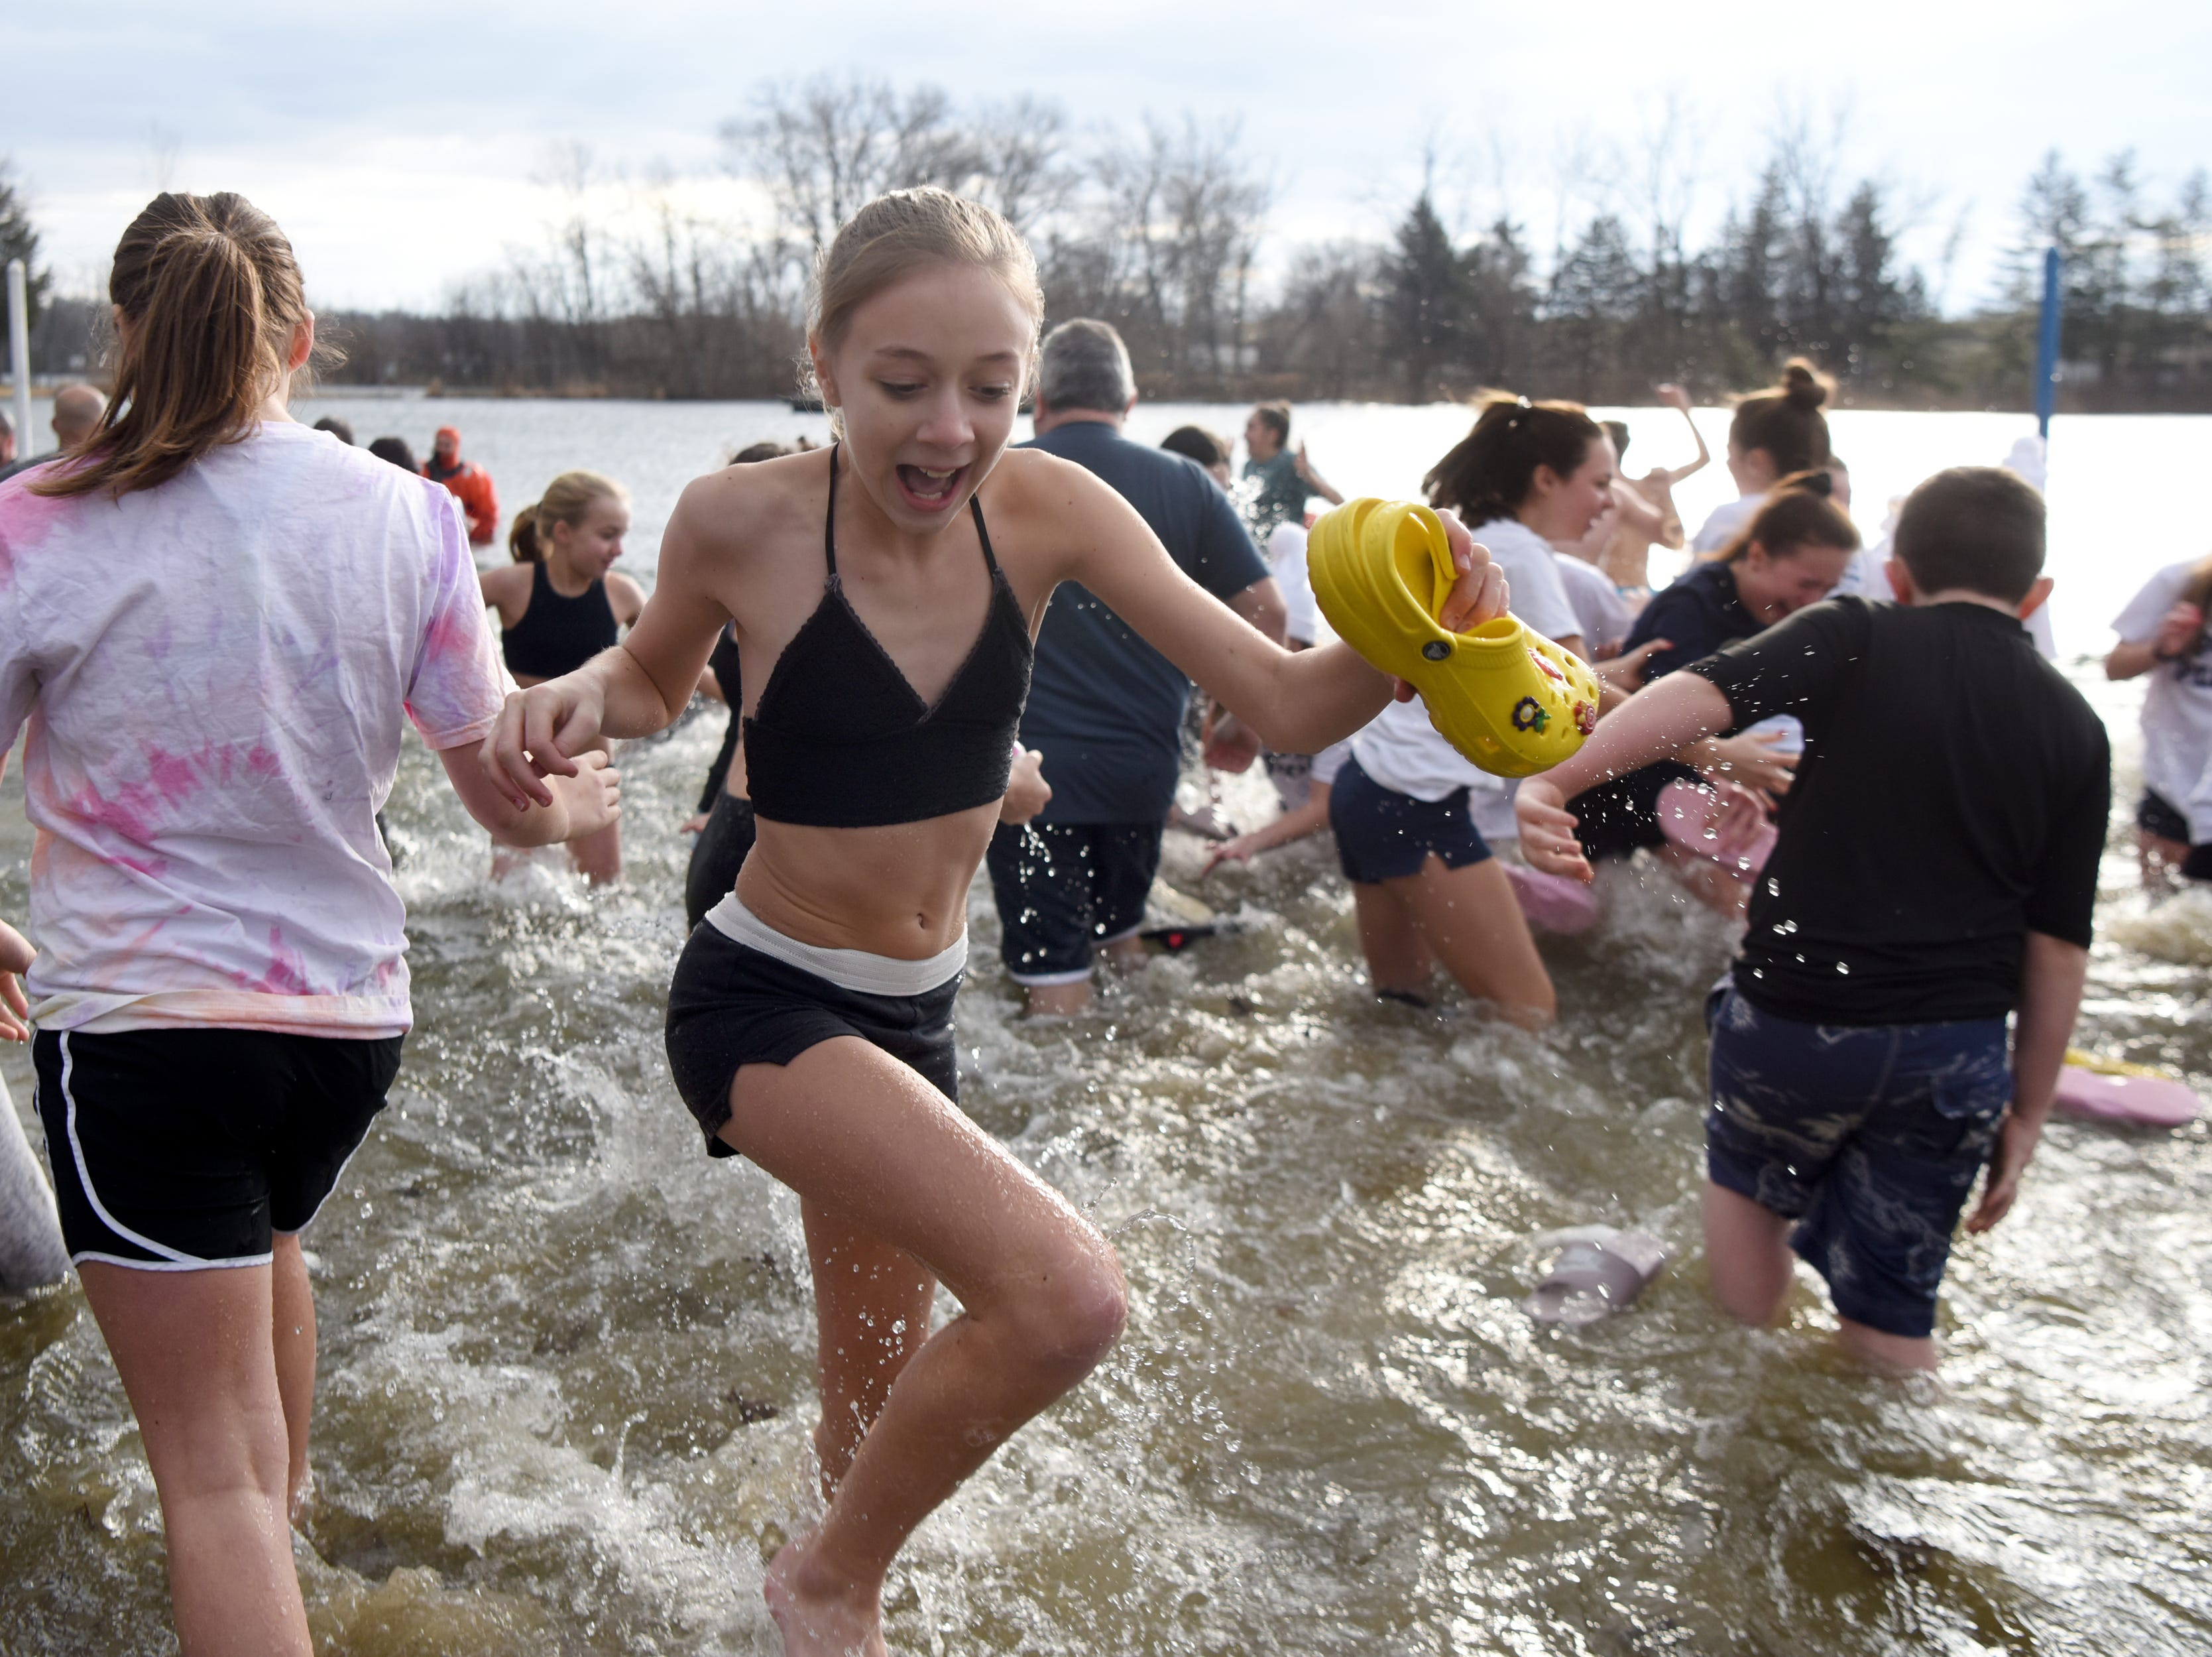 Participants in the 4th annual Pequannock Polar Plunge rush out of the lake in Pequannock Valley Park on Sunday, January 6, 2019.